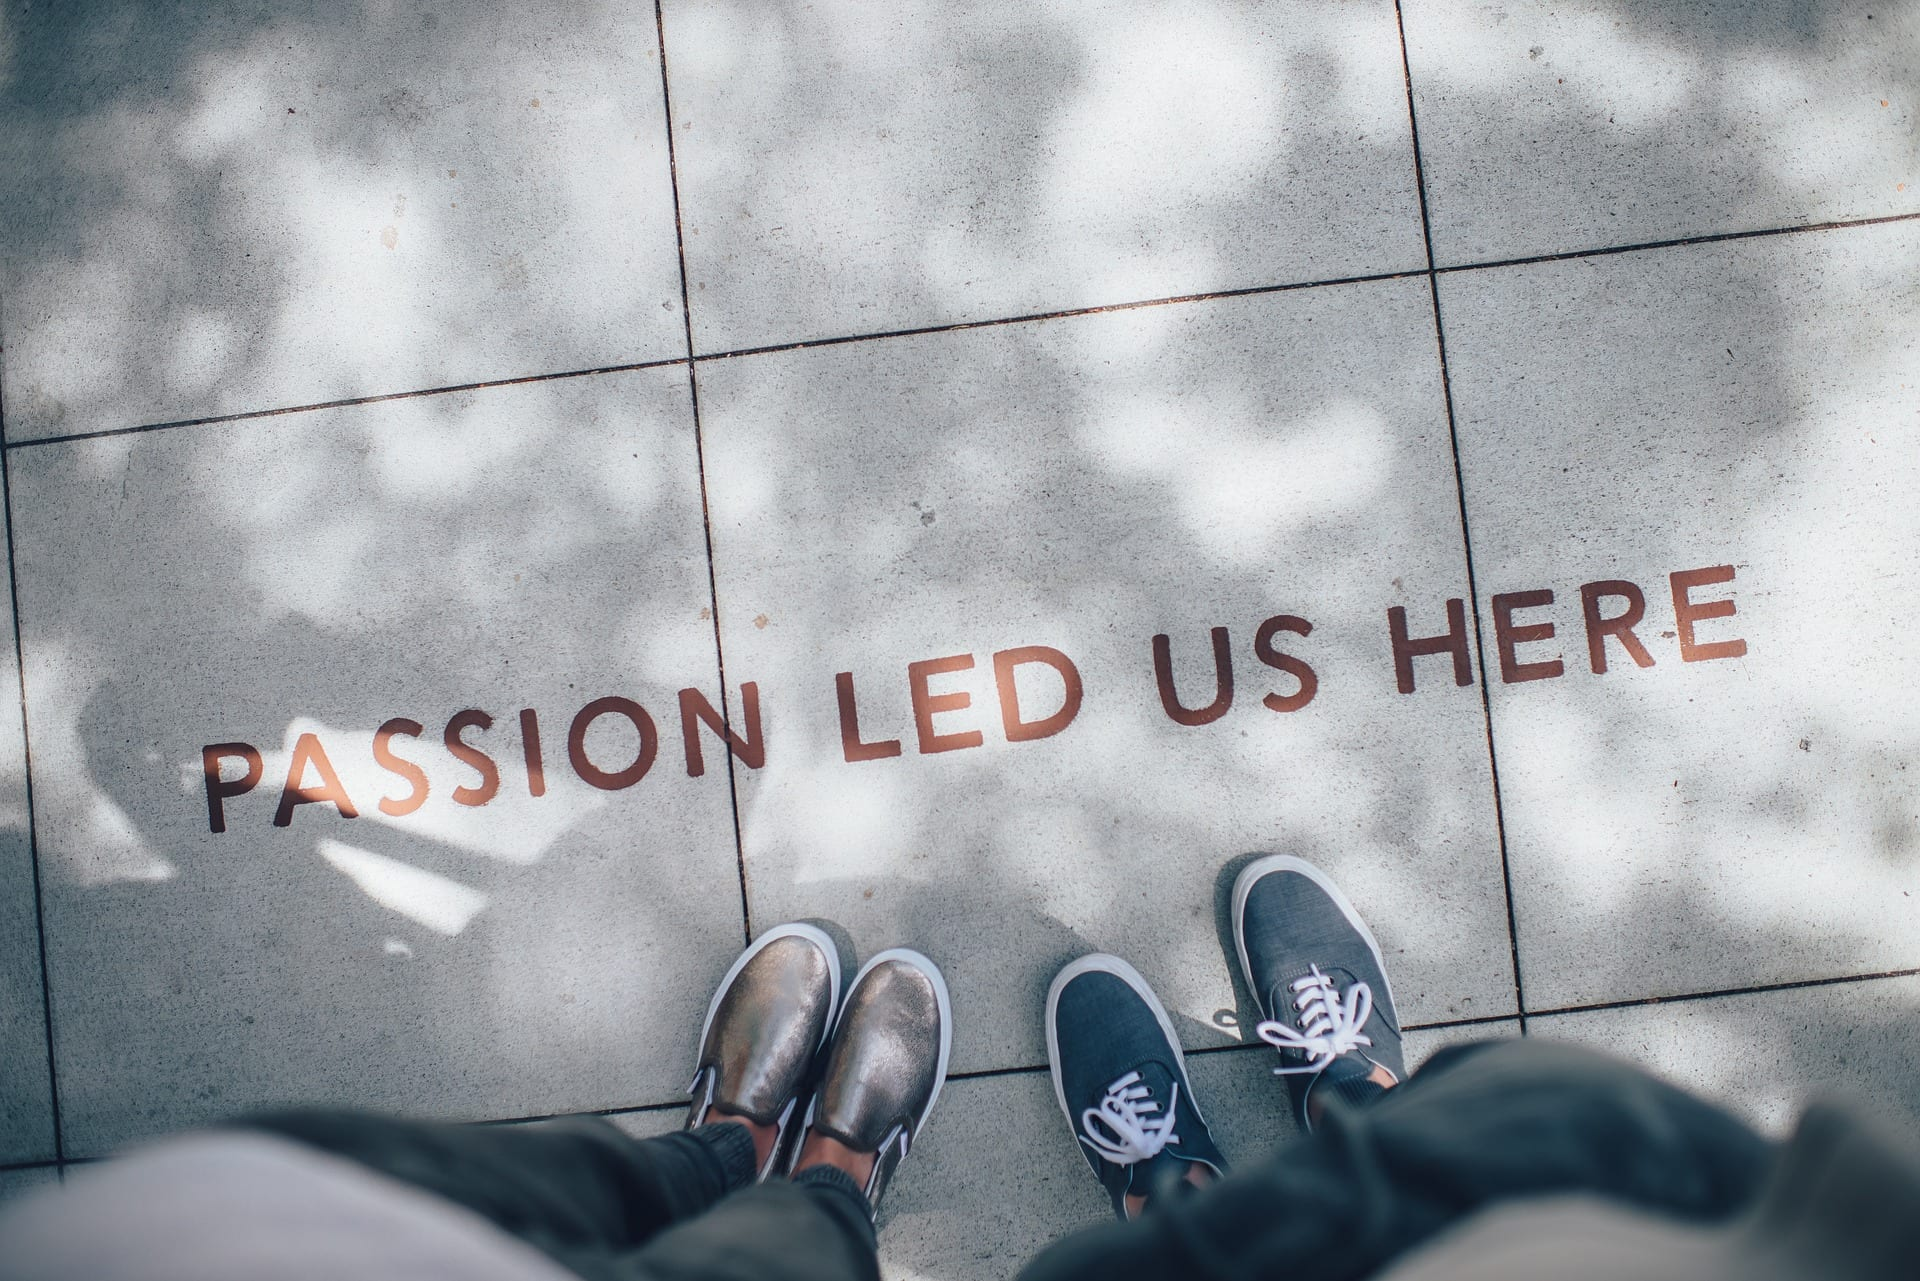 """Some feet pointing to the words """"PASSION LED US HERE"""" written on the ground."""